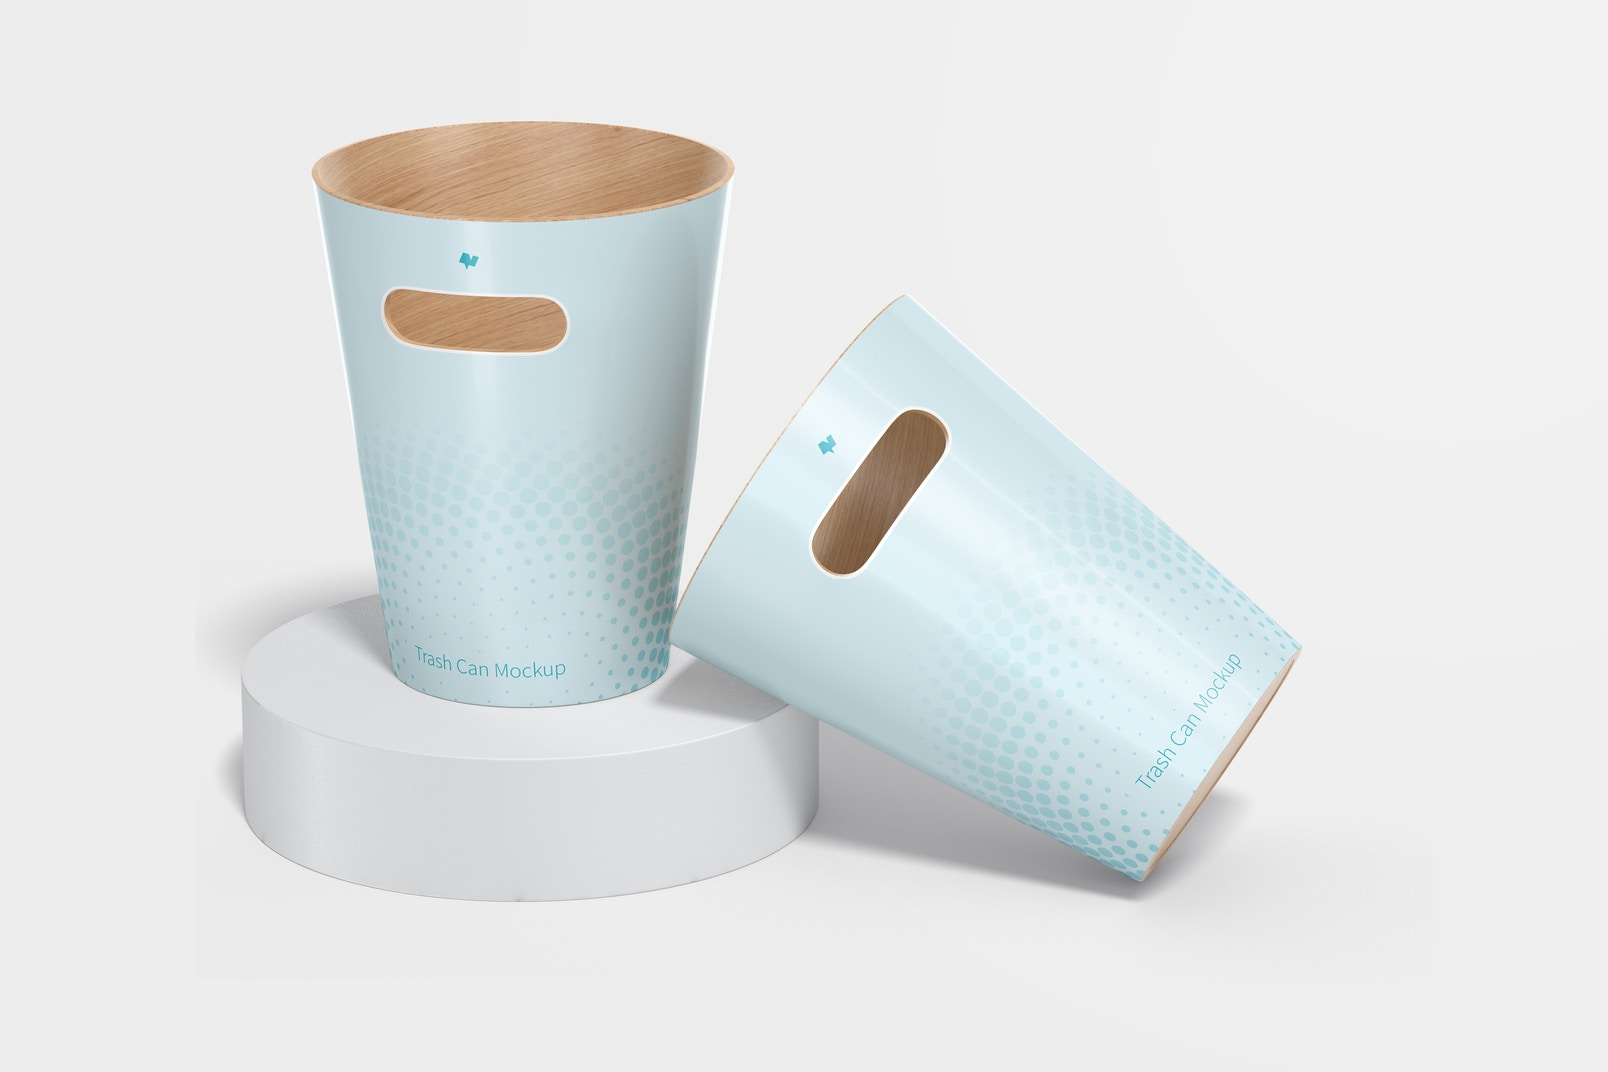 Wood Trash Cans Mockup, Standing and Dropped